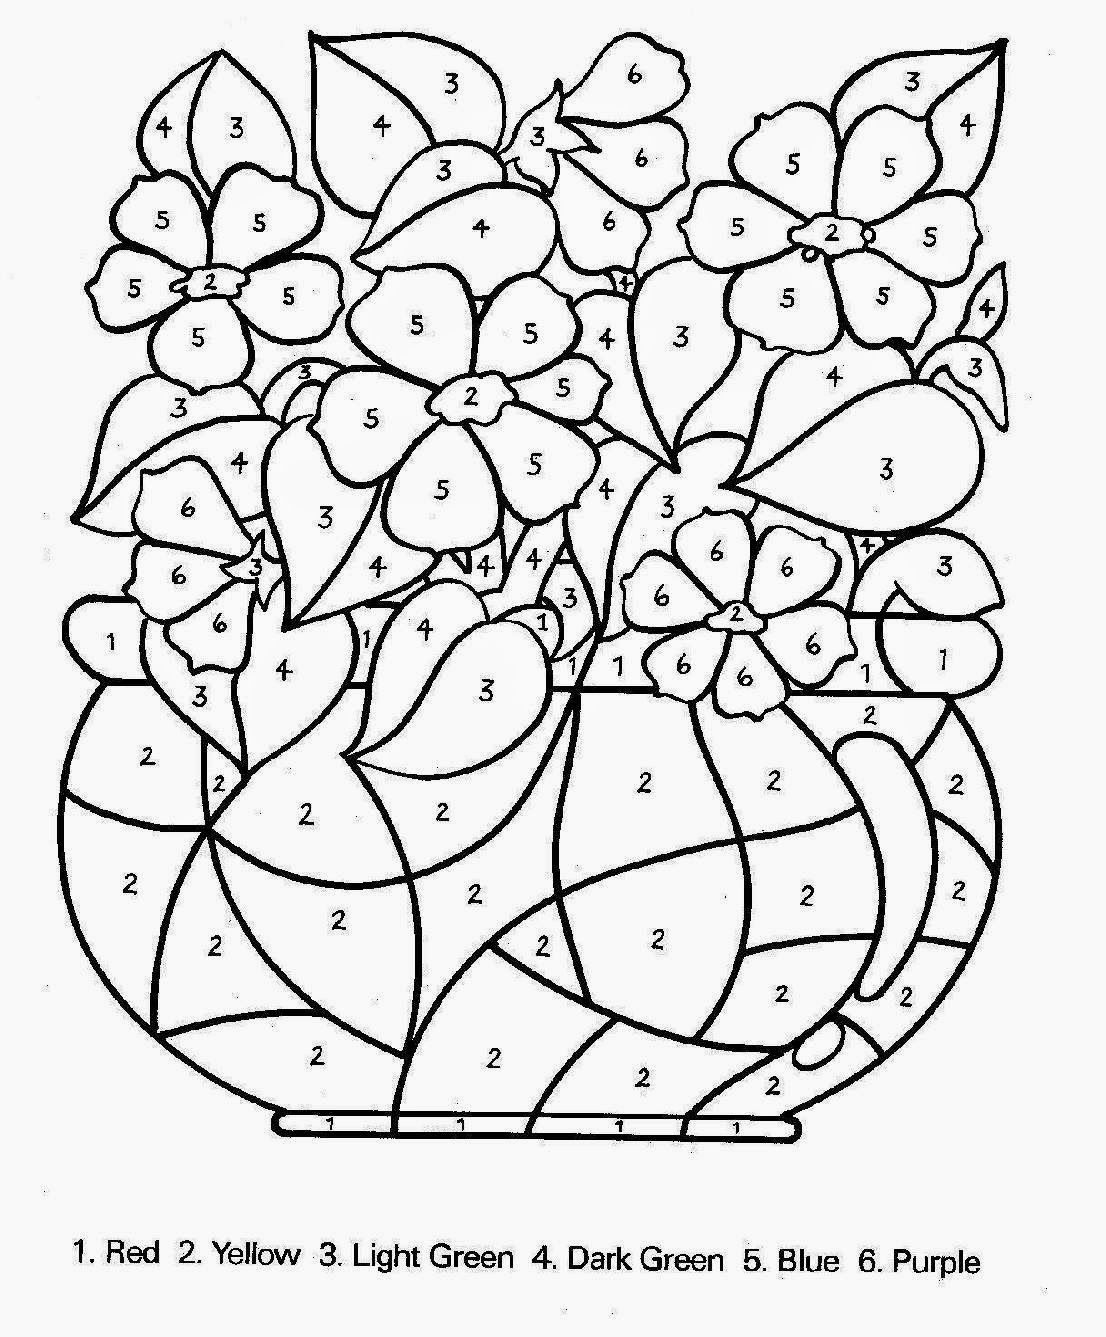 free coloring pages color by number color by number coloring pages free coloring pages - Free Coloring Papers